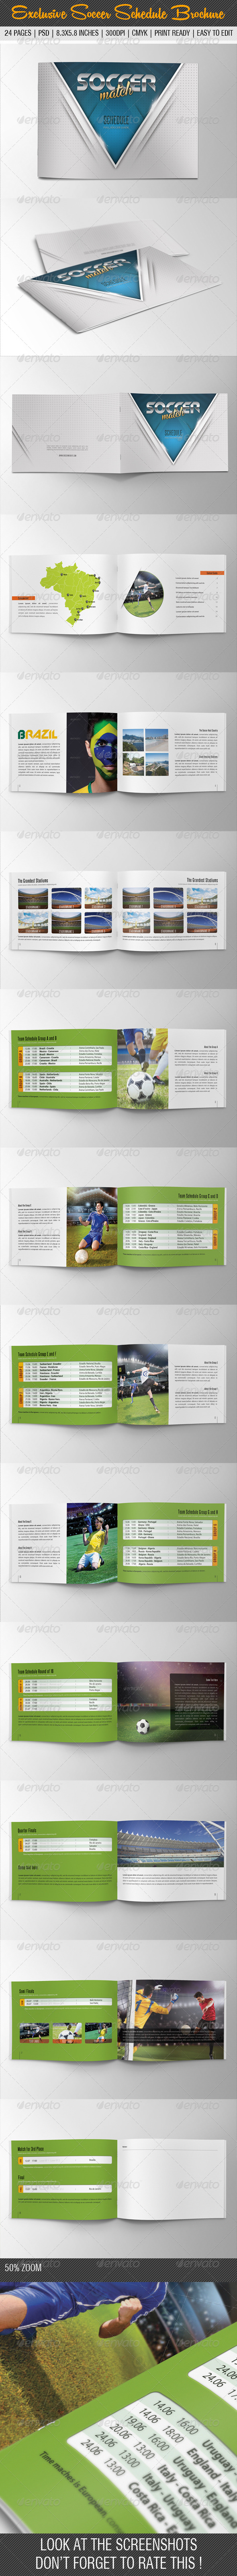 GraphicRiver Exclusive Soccer Match Schedule 2014 Brochure 7823056